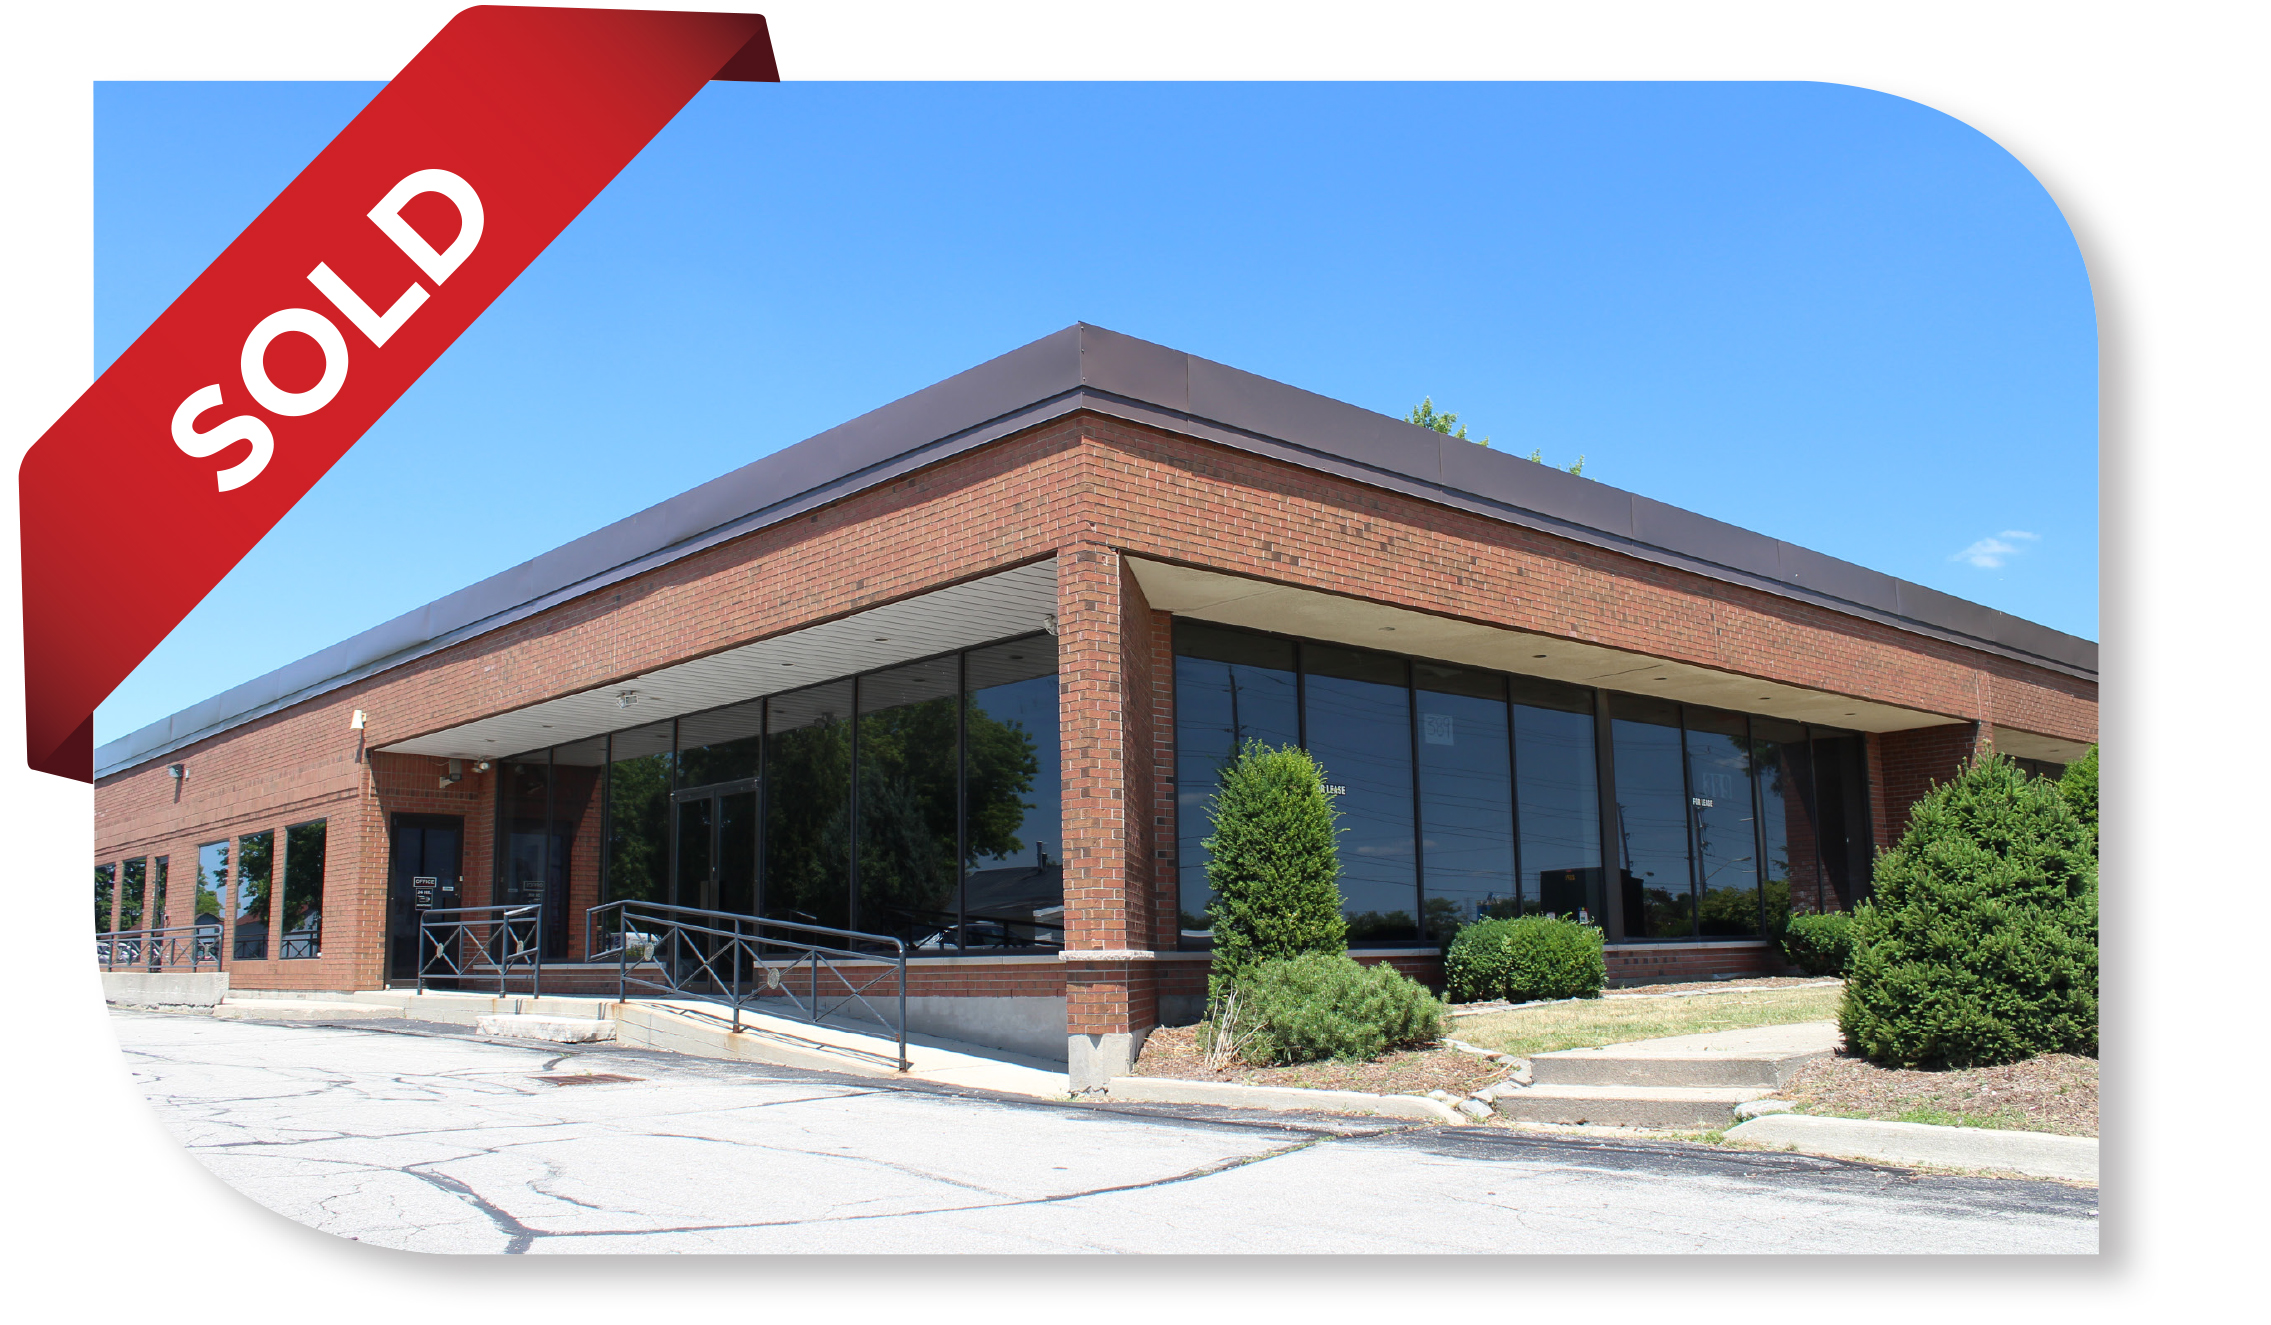 26,000 SF Retail/Office Building